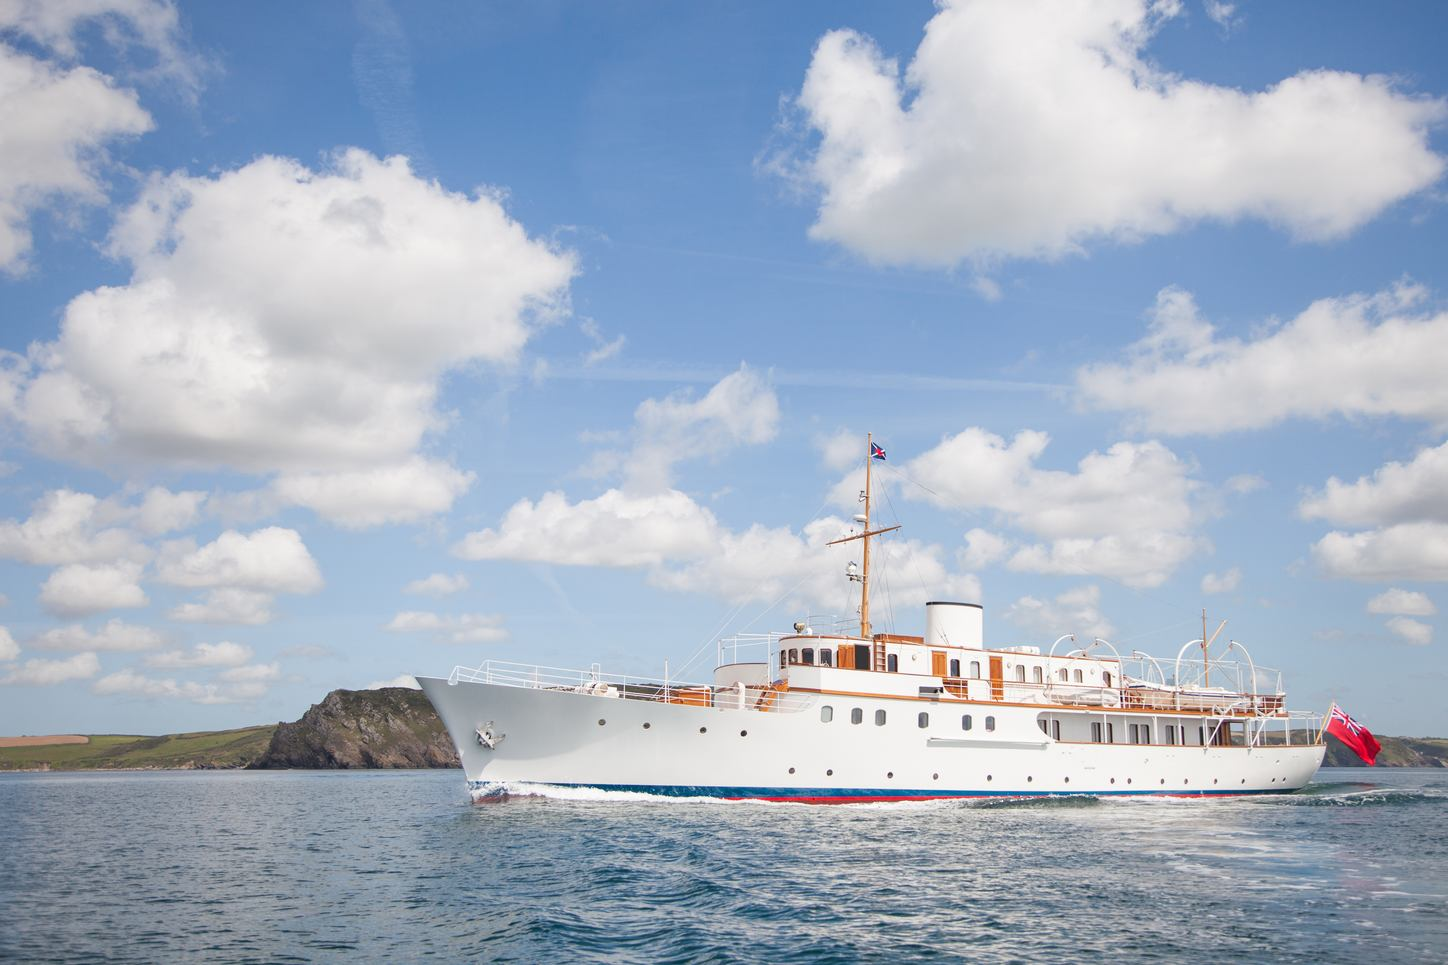 A view of the fresh white port side of superyacht MALAHNE